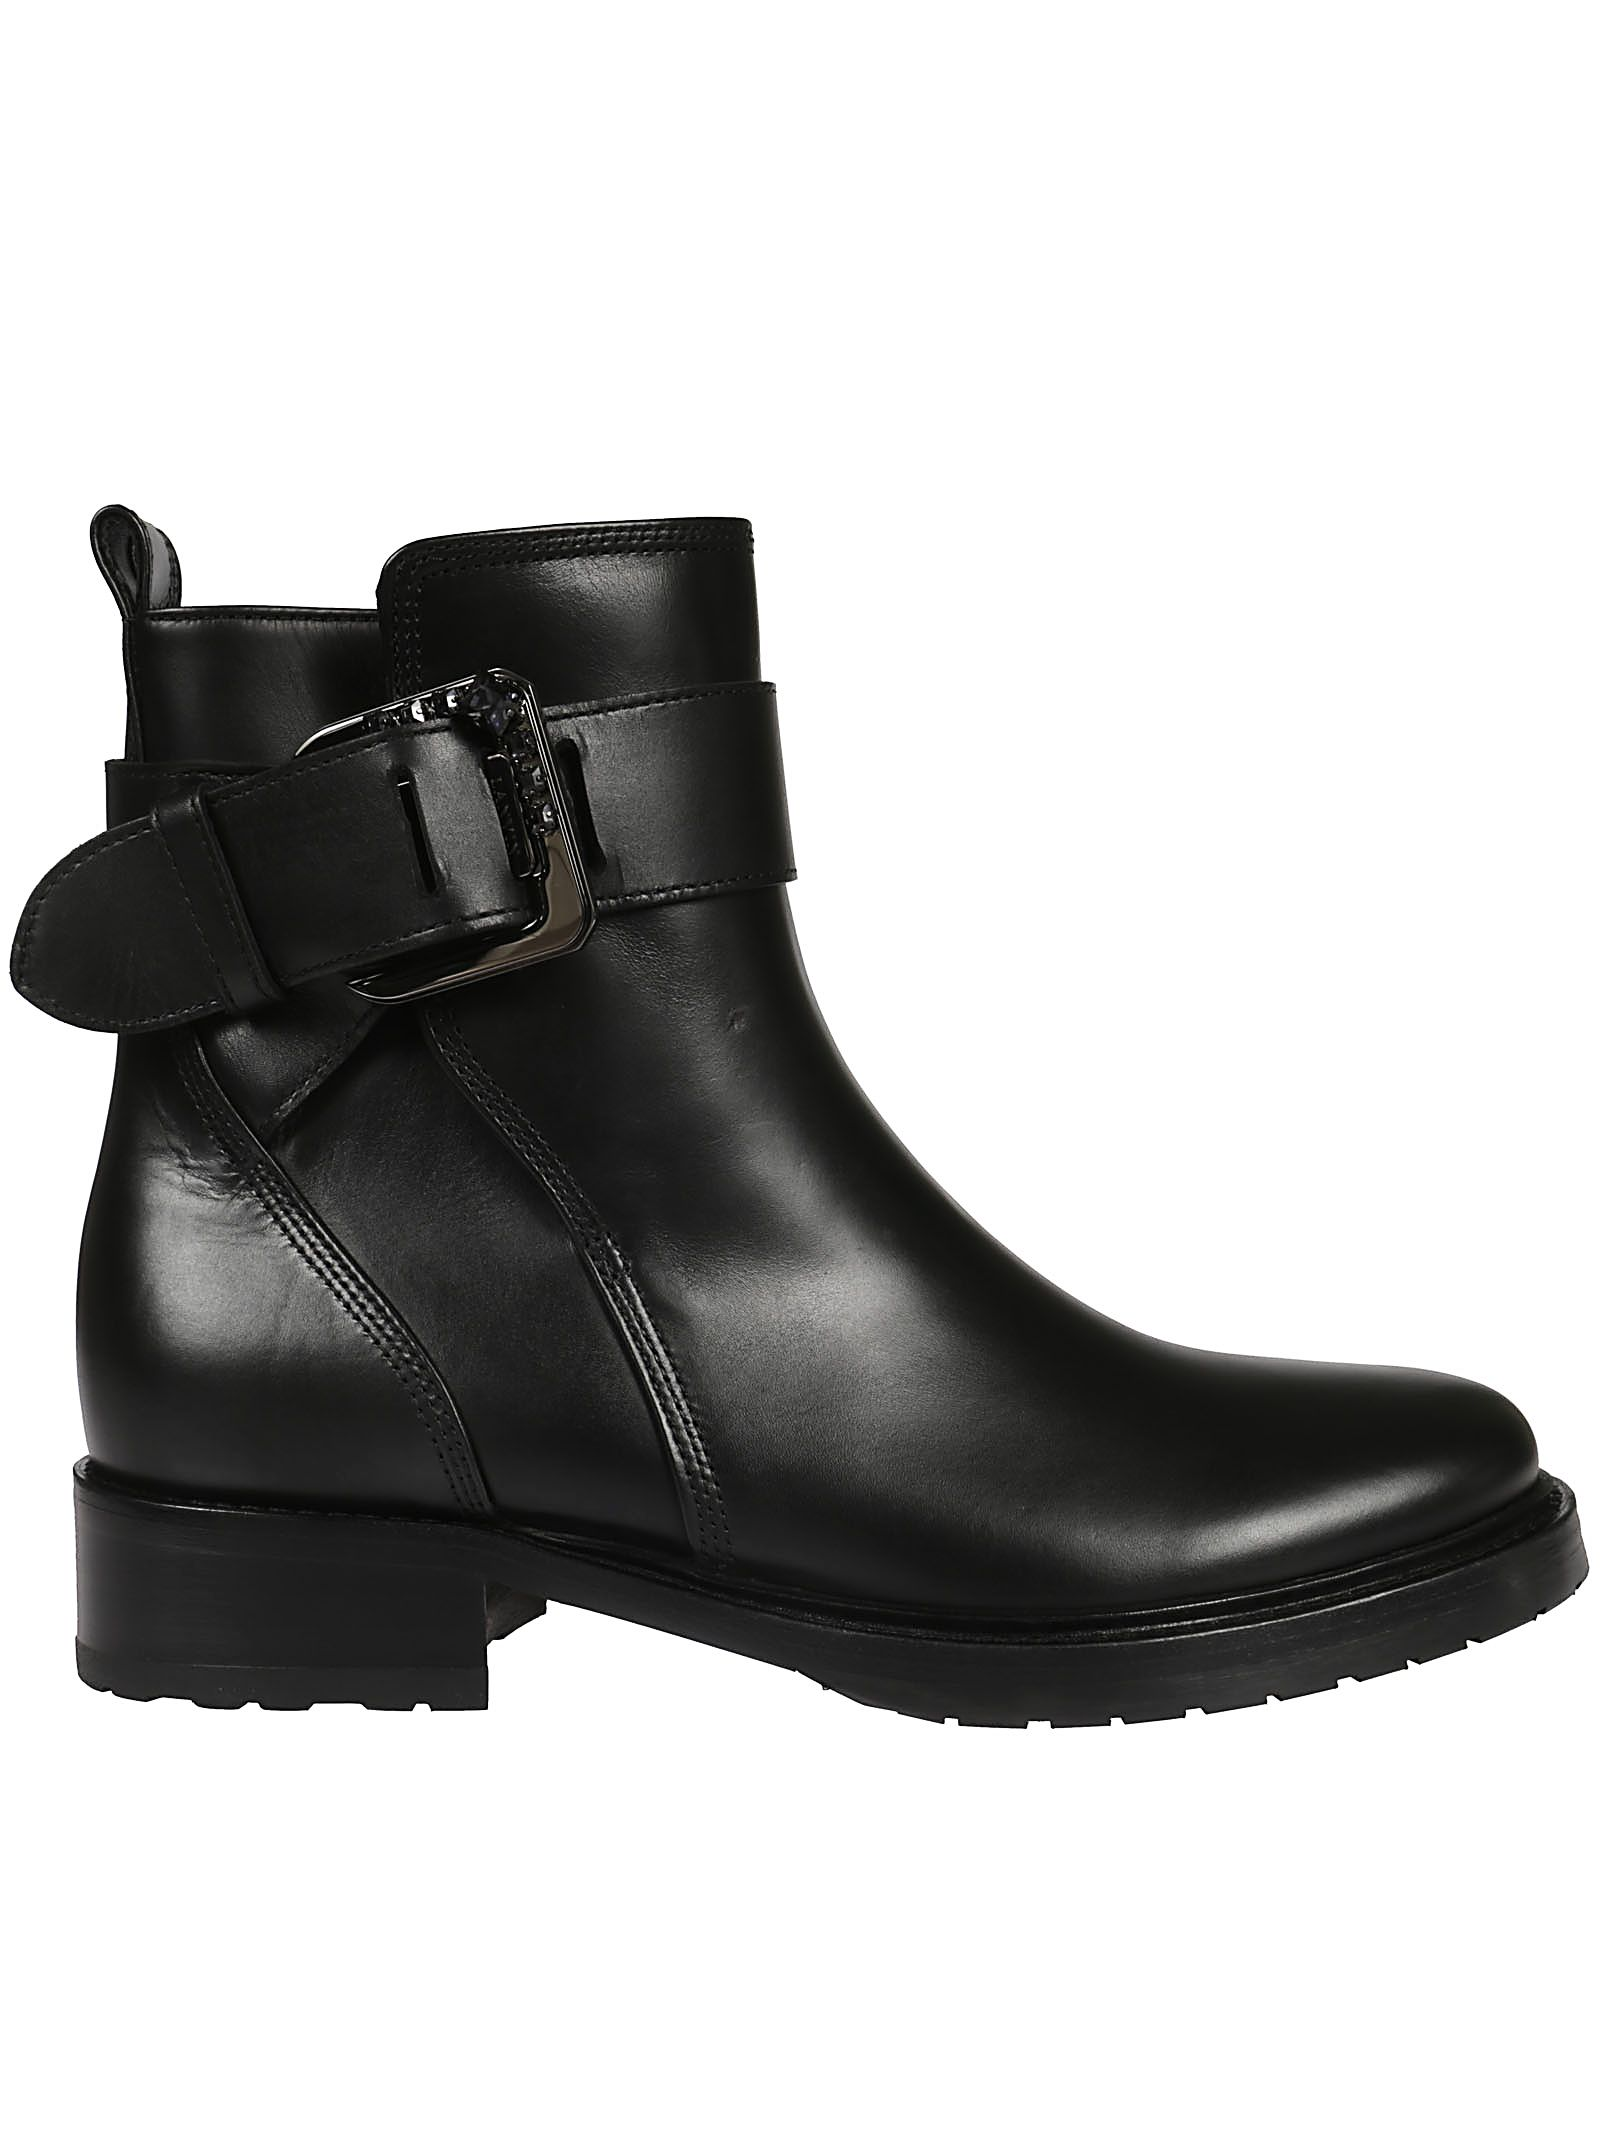 SQUARE BUCKLE BIKER BOOTS